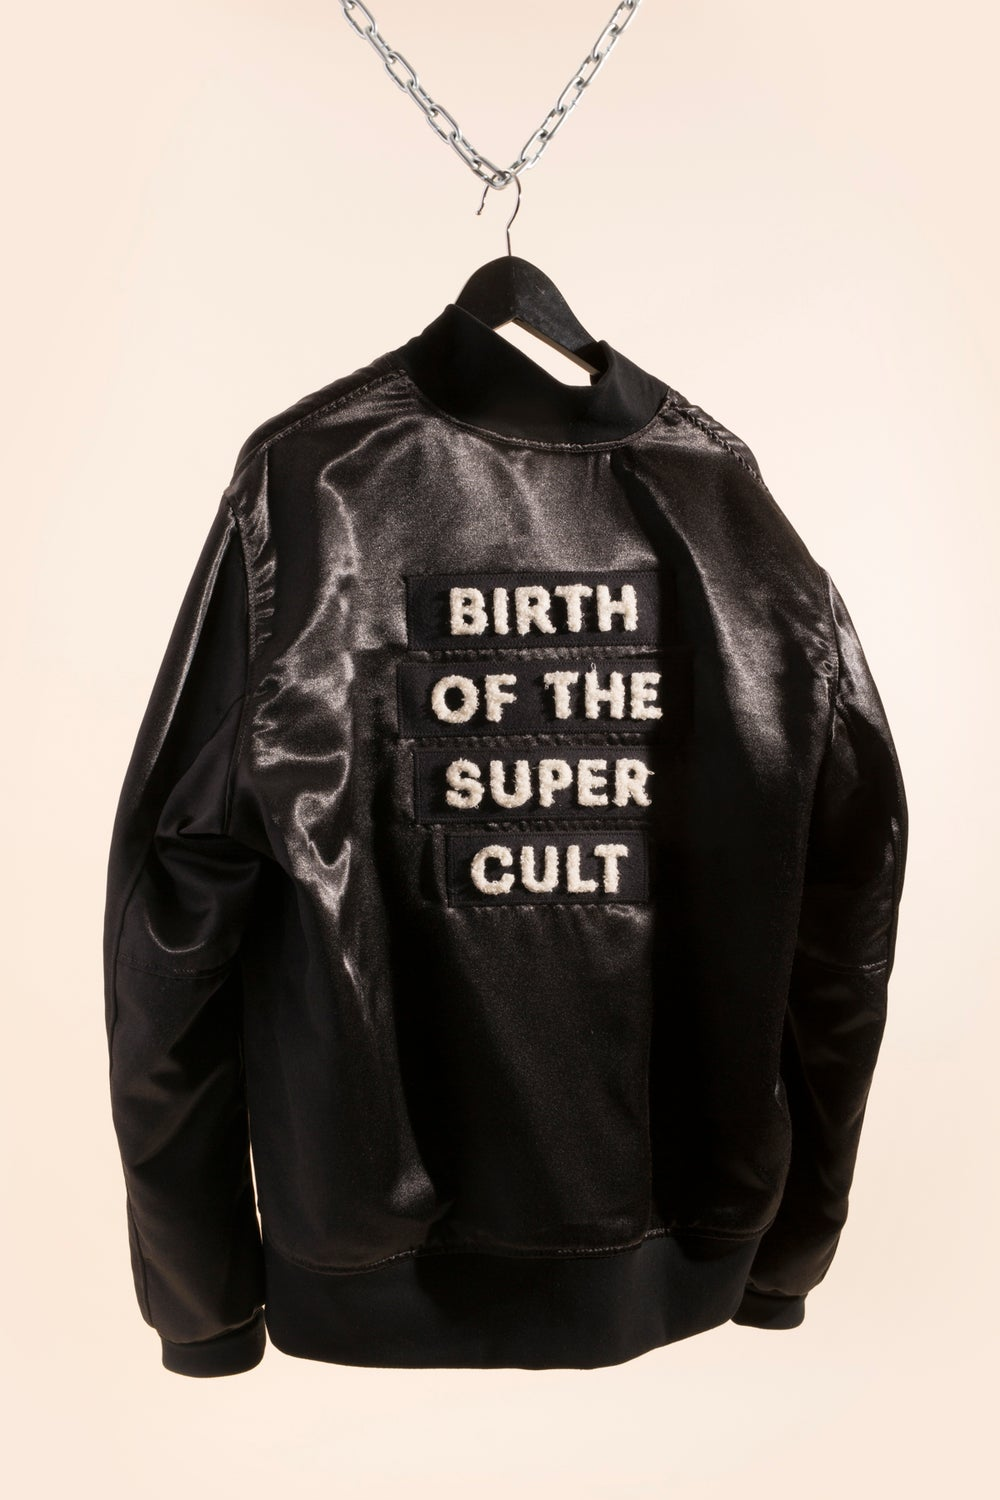 Image of Unisex Varsity Jacket - Draught x OFC - Birth of the Super Cult